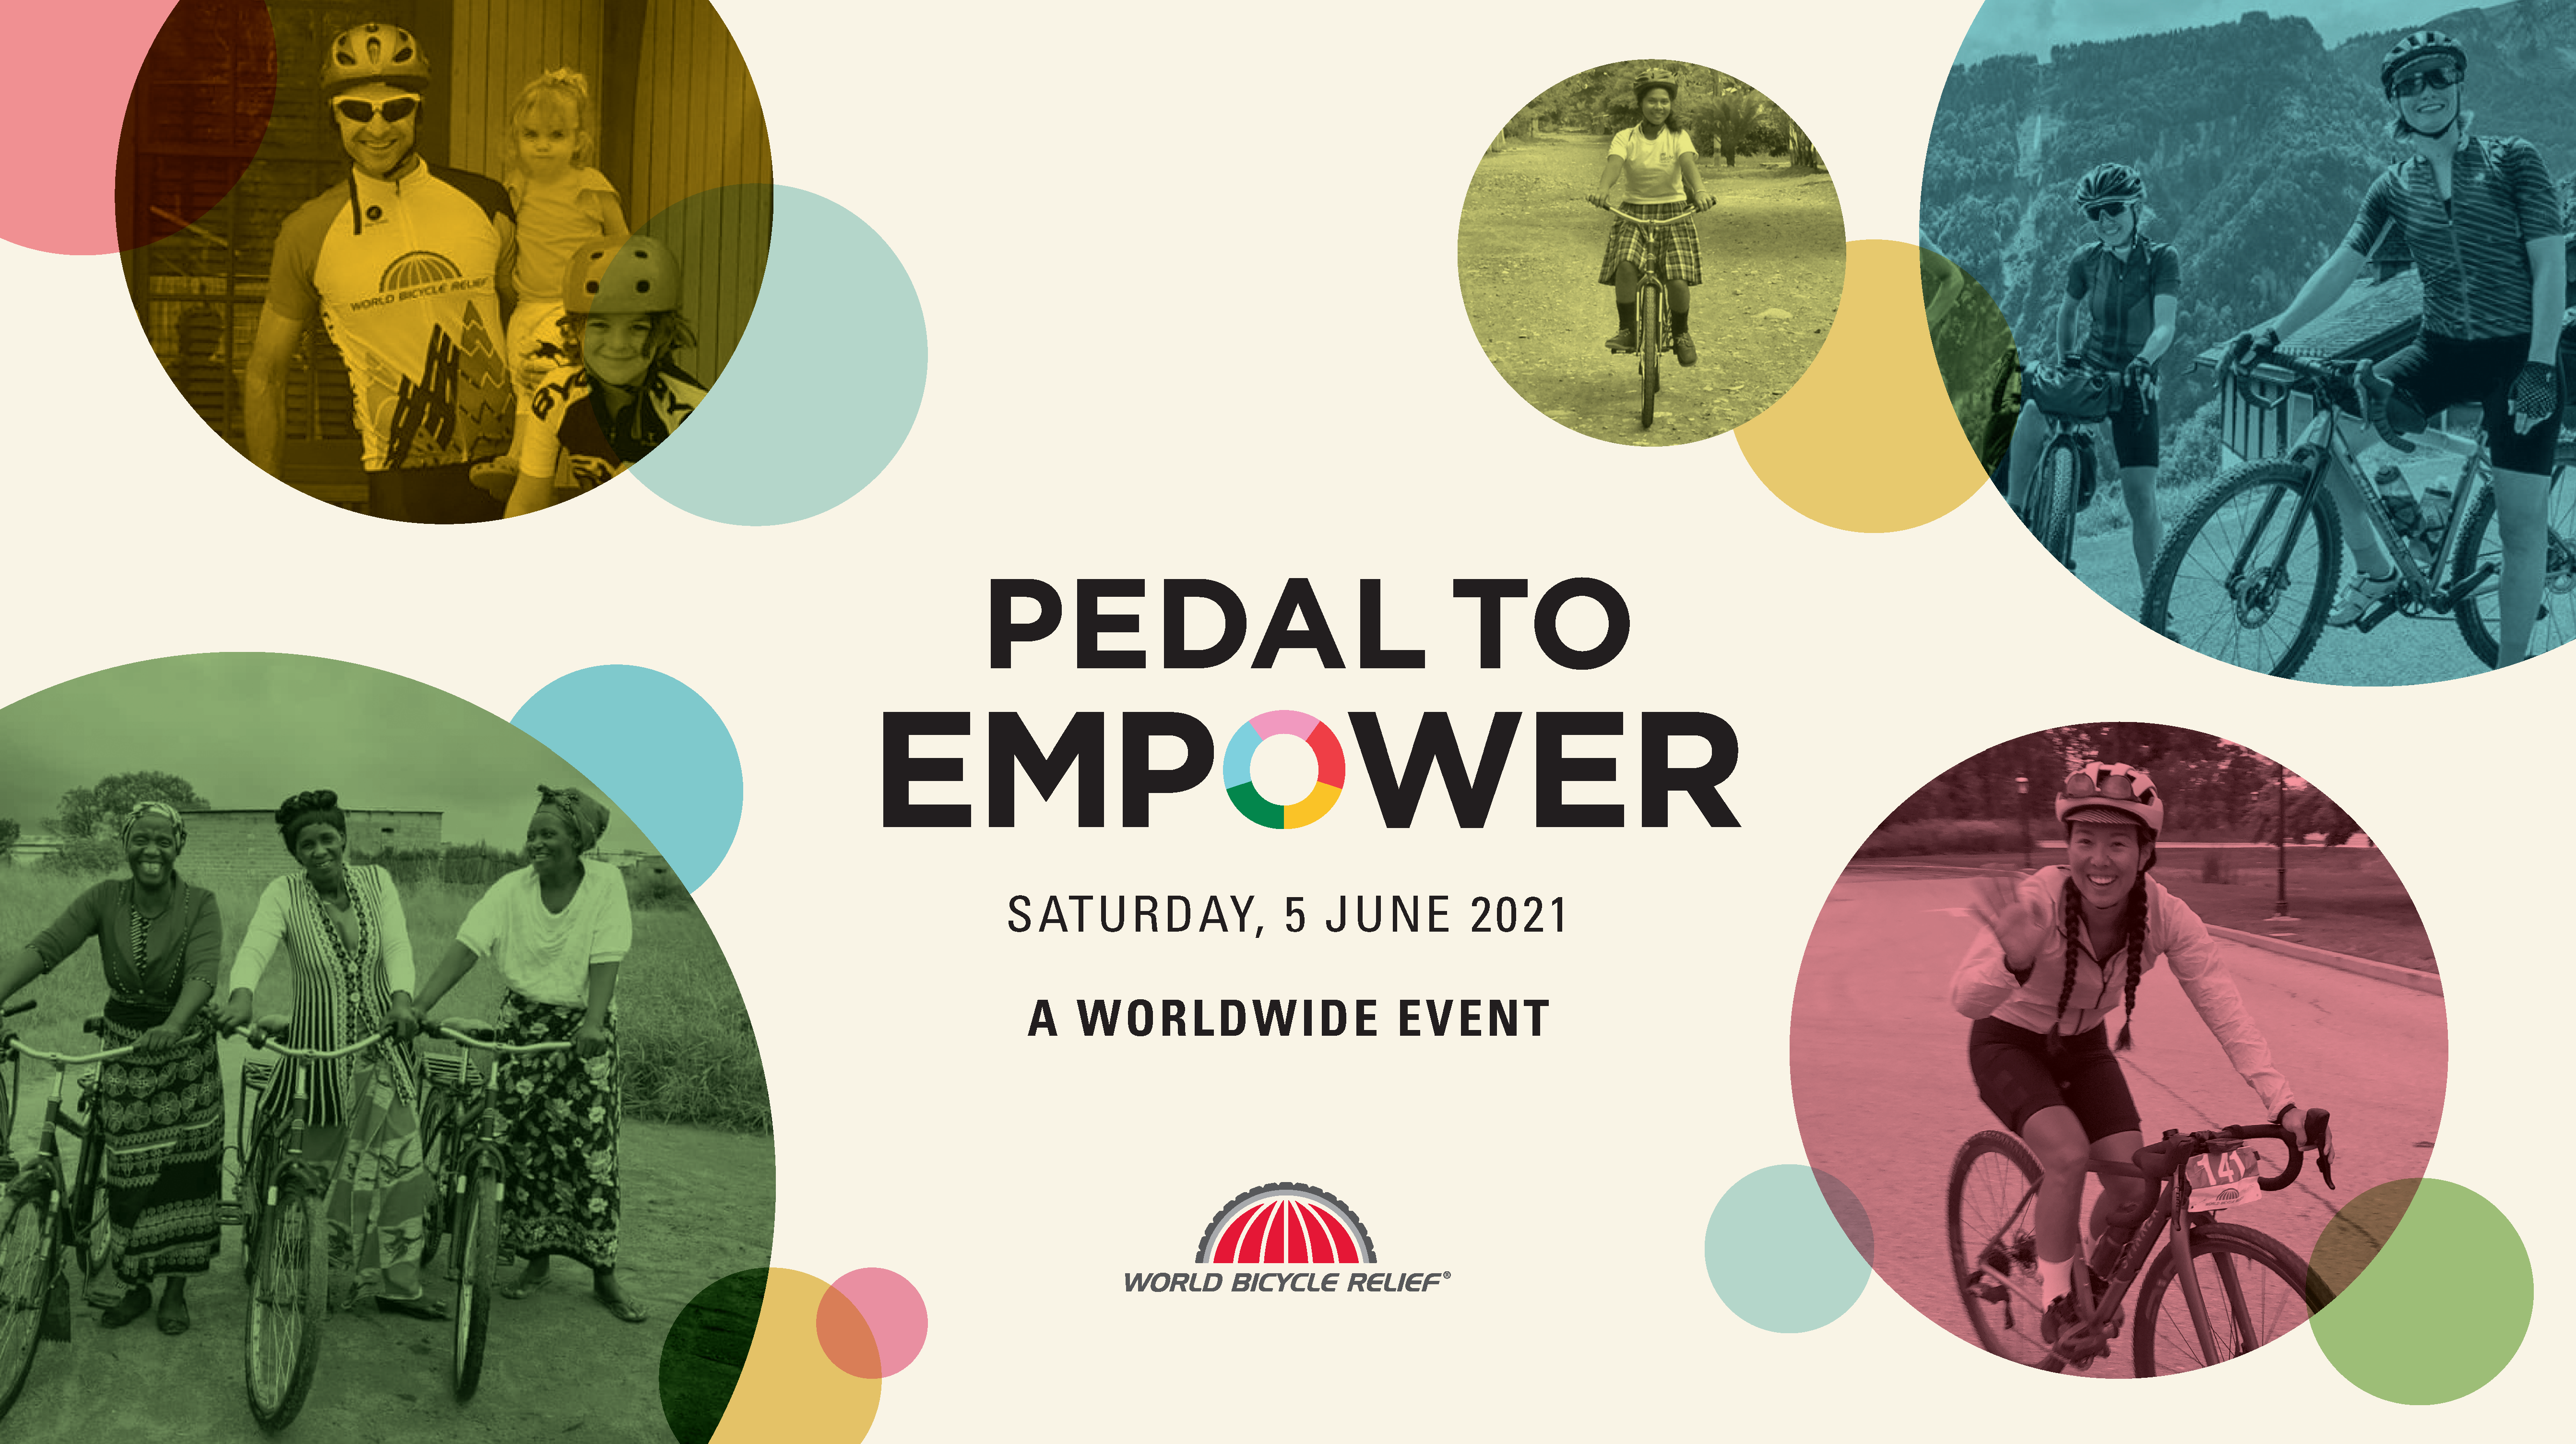 PEDAL TO EMPOWER